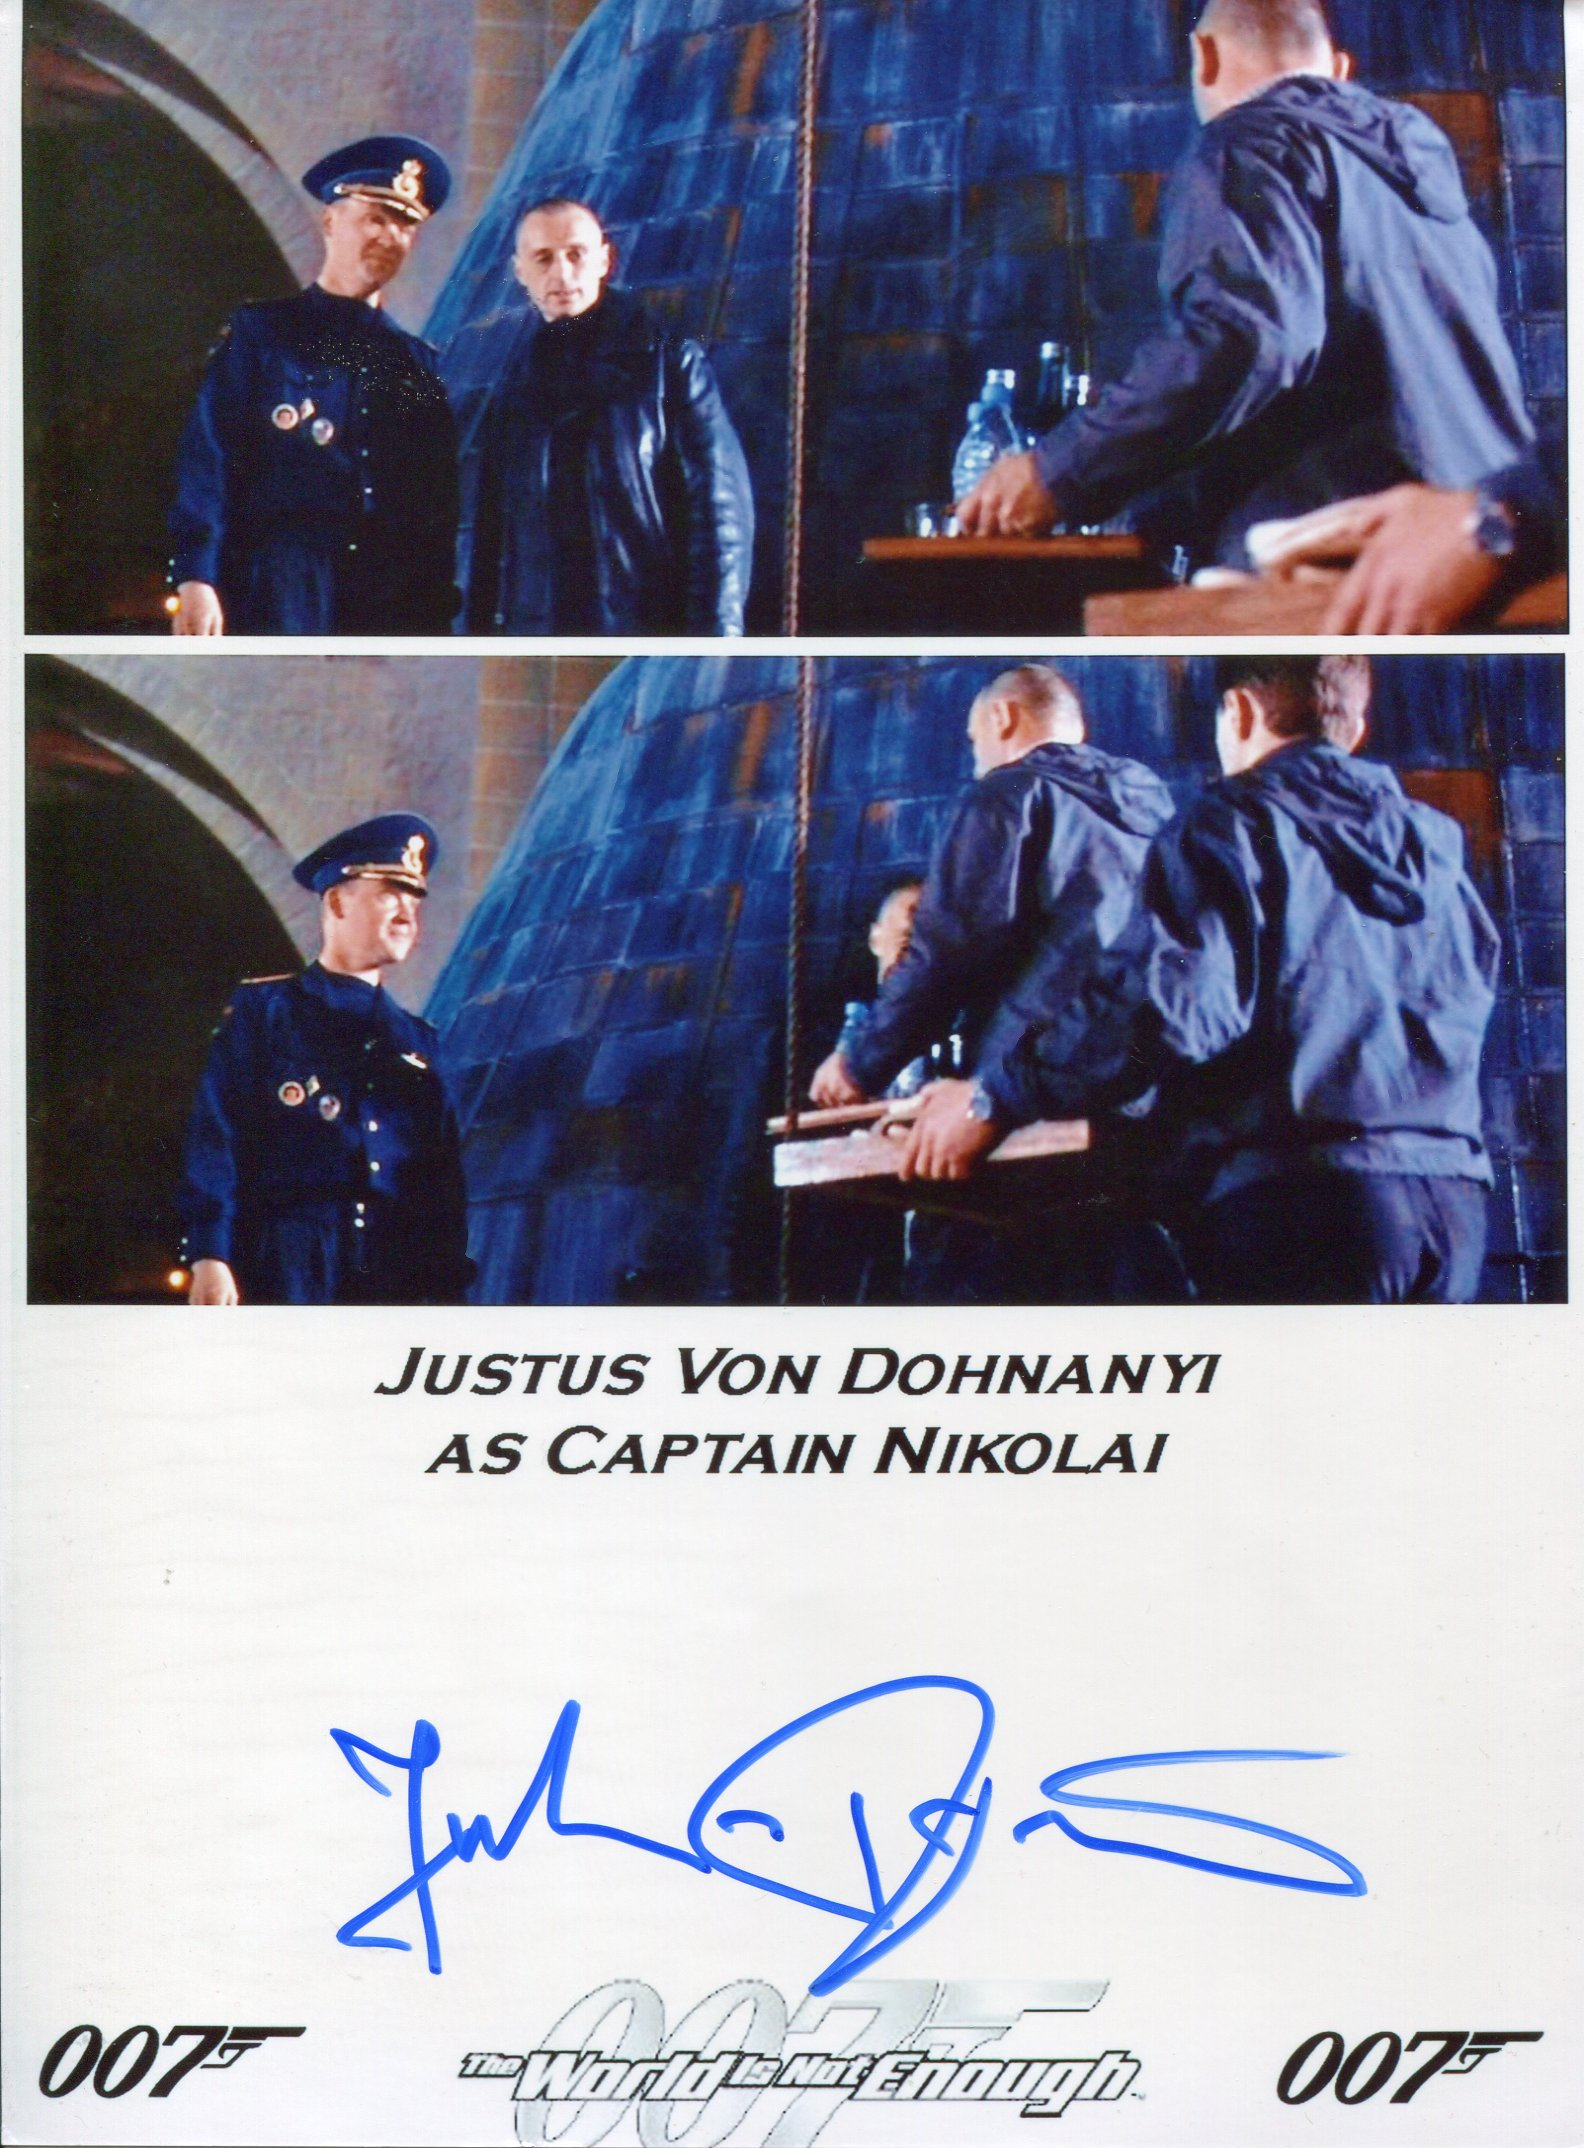 007 James Bond movie The World is Not Enough 8x11 photo signed by actor Justus Von Dohnanyi as